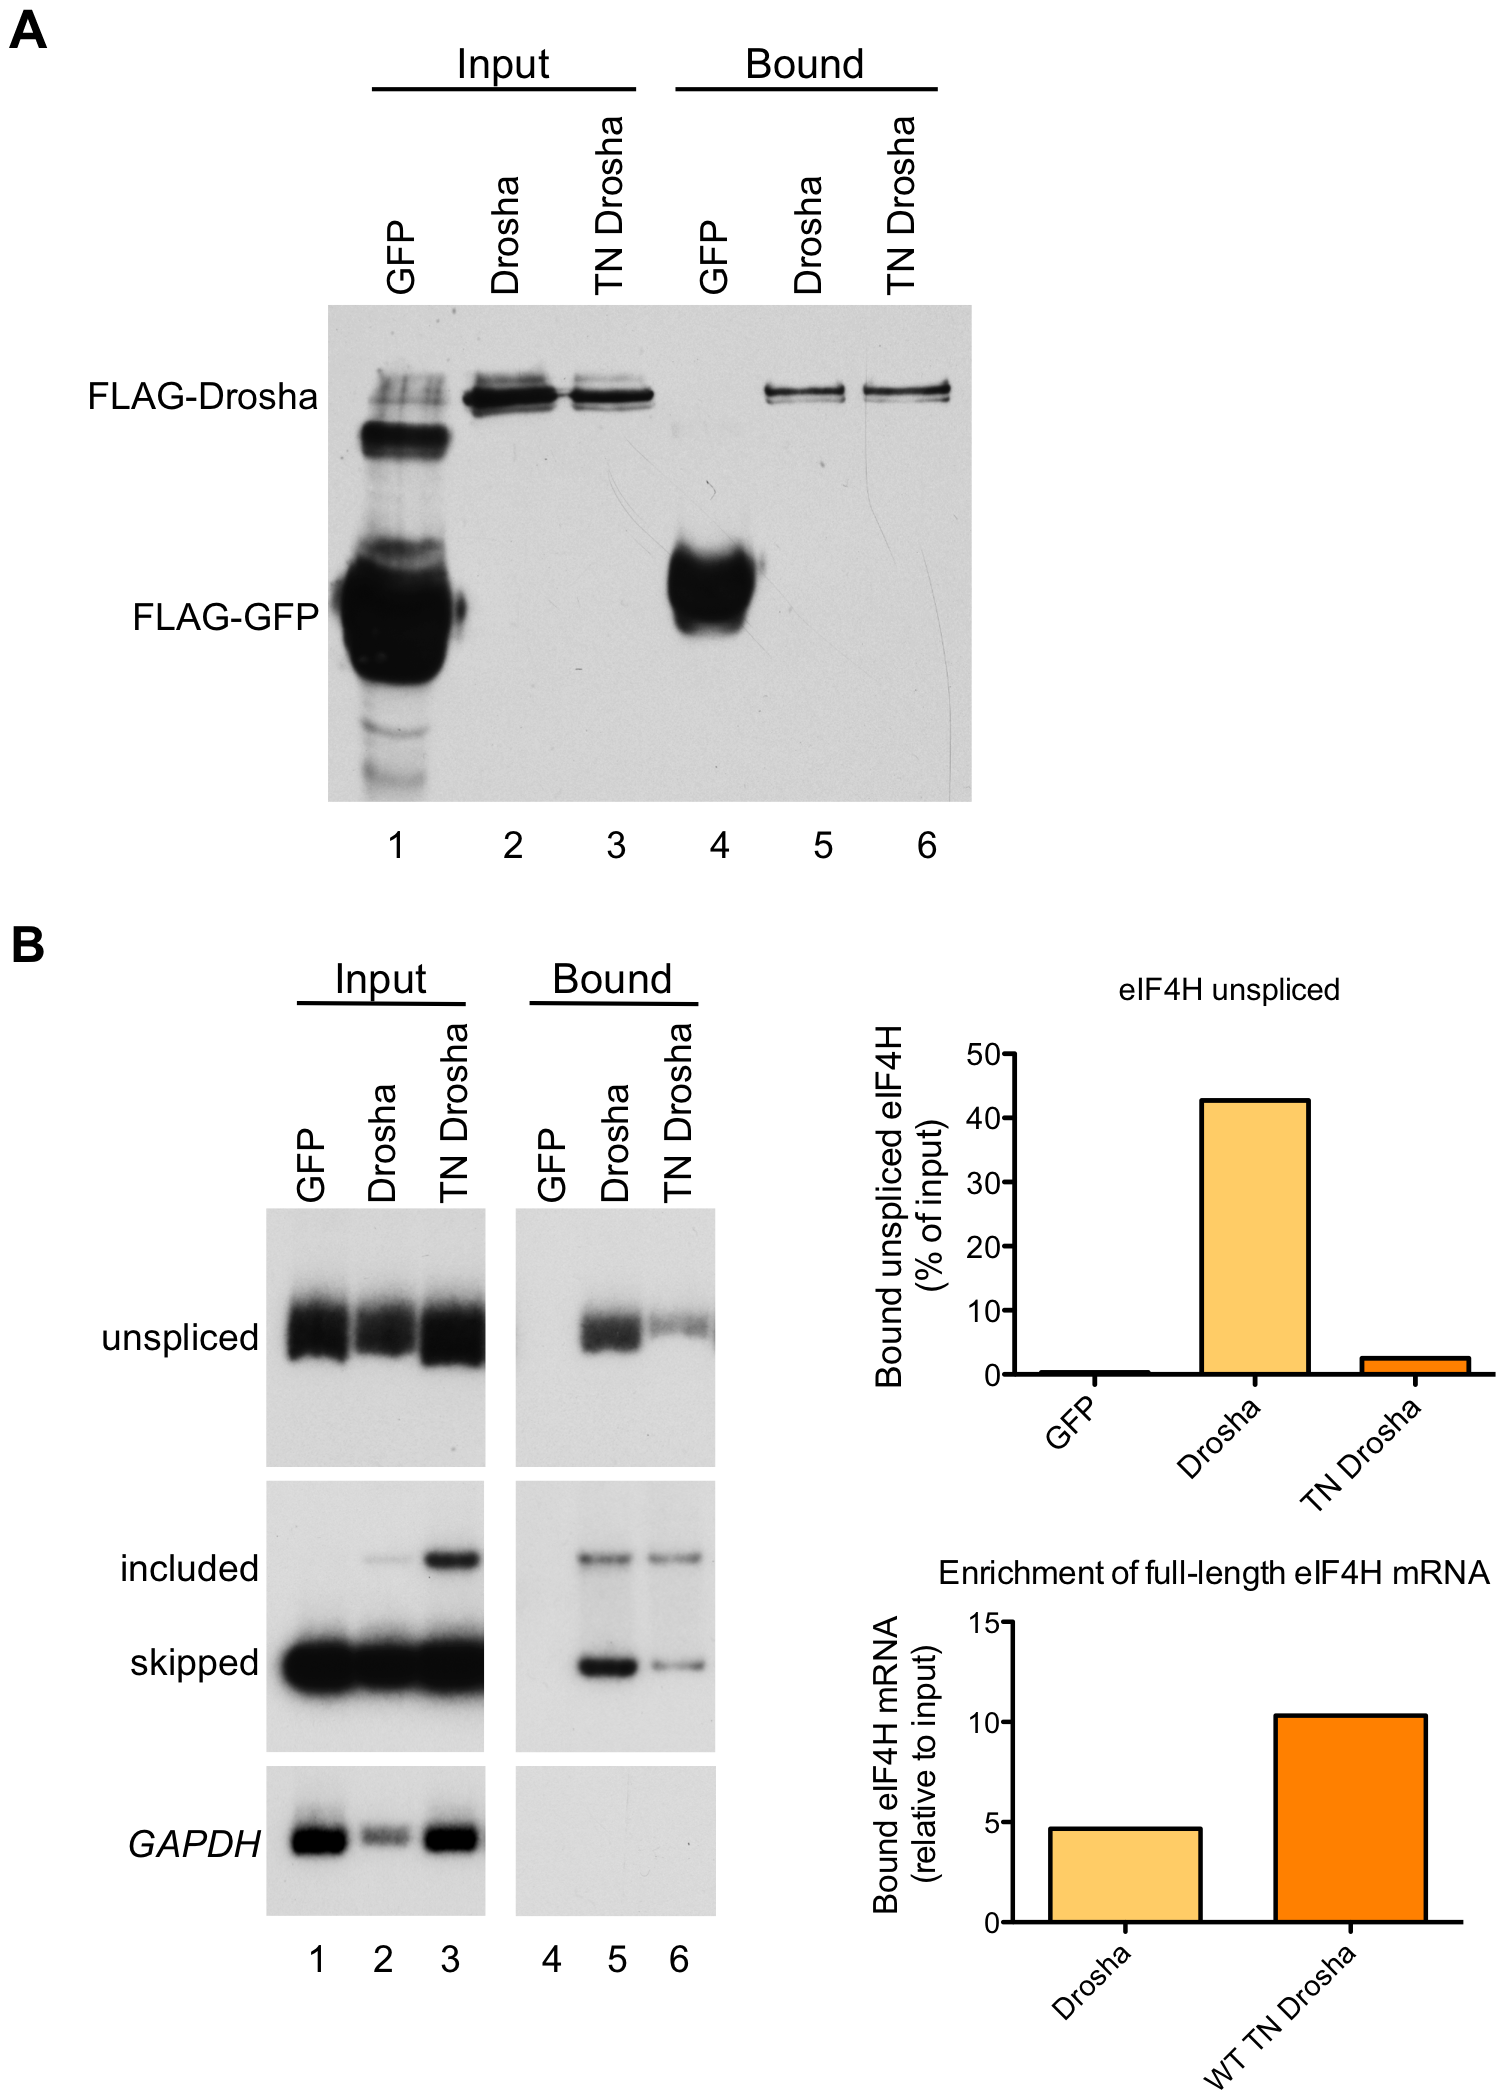 <i>eIF4H</i> exon 5 co-immunoprecipitates with Drosha and TN Drosha.